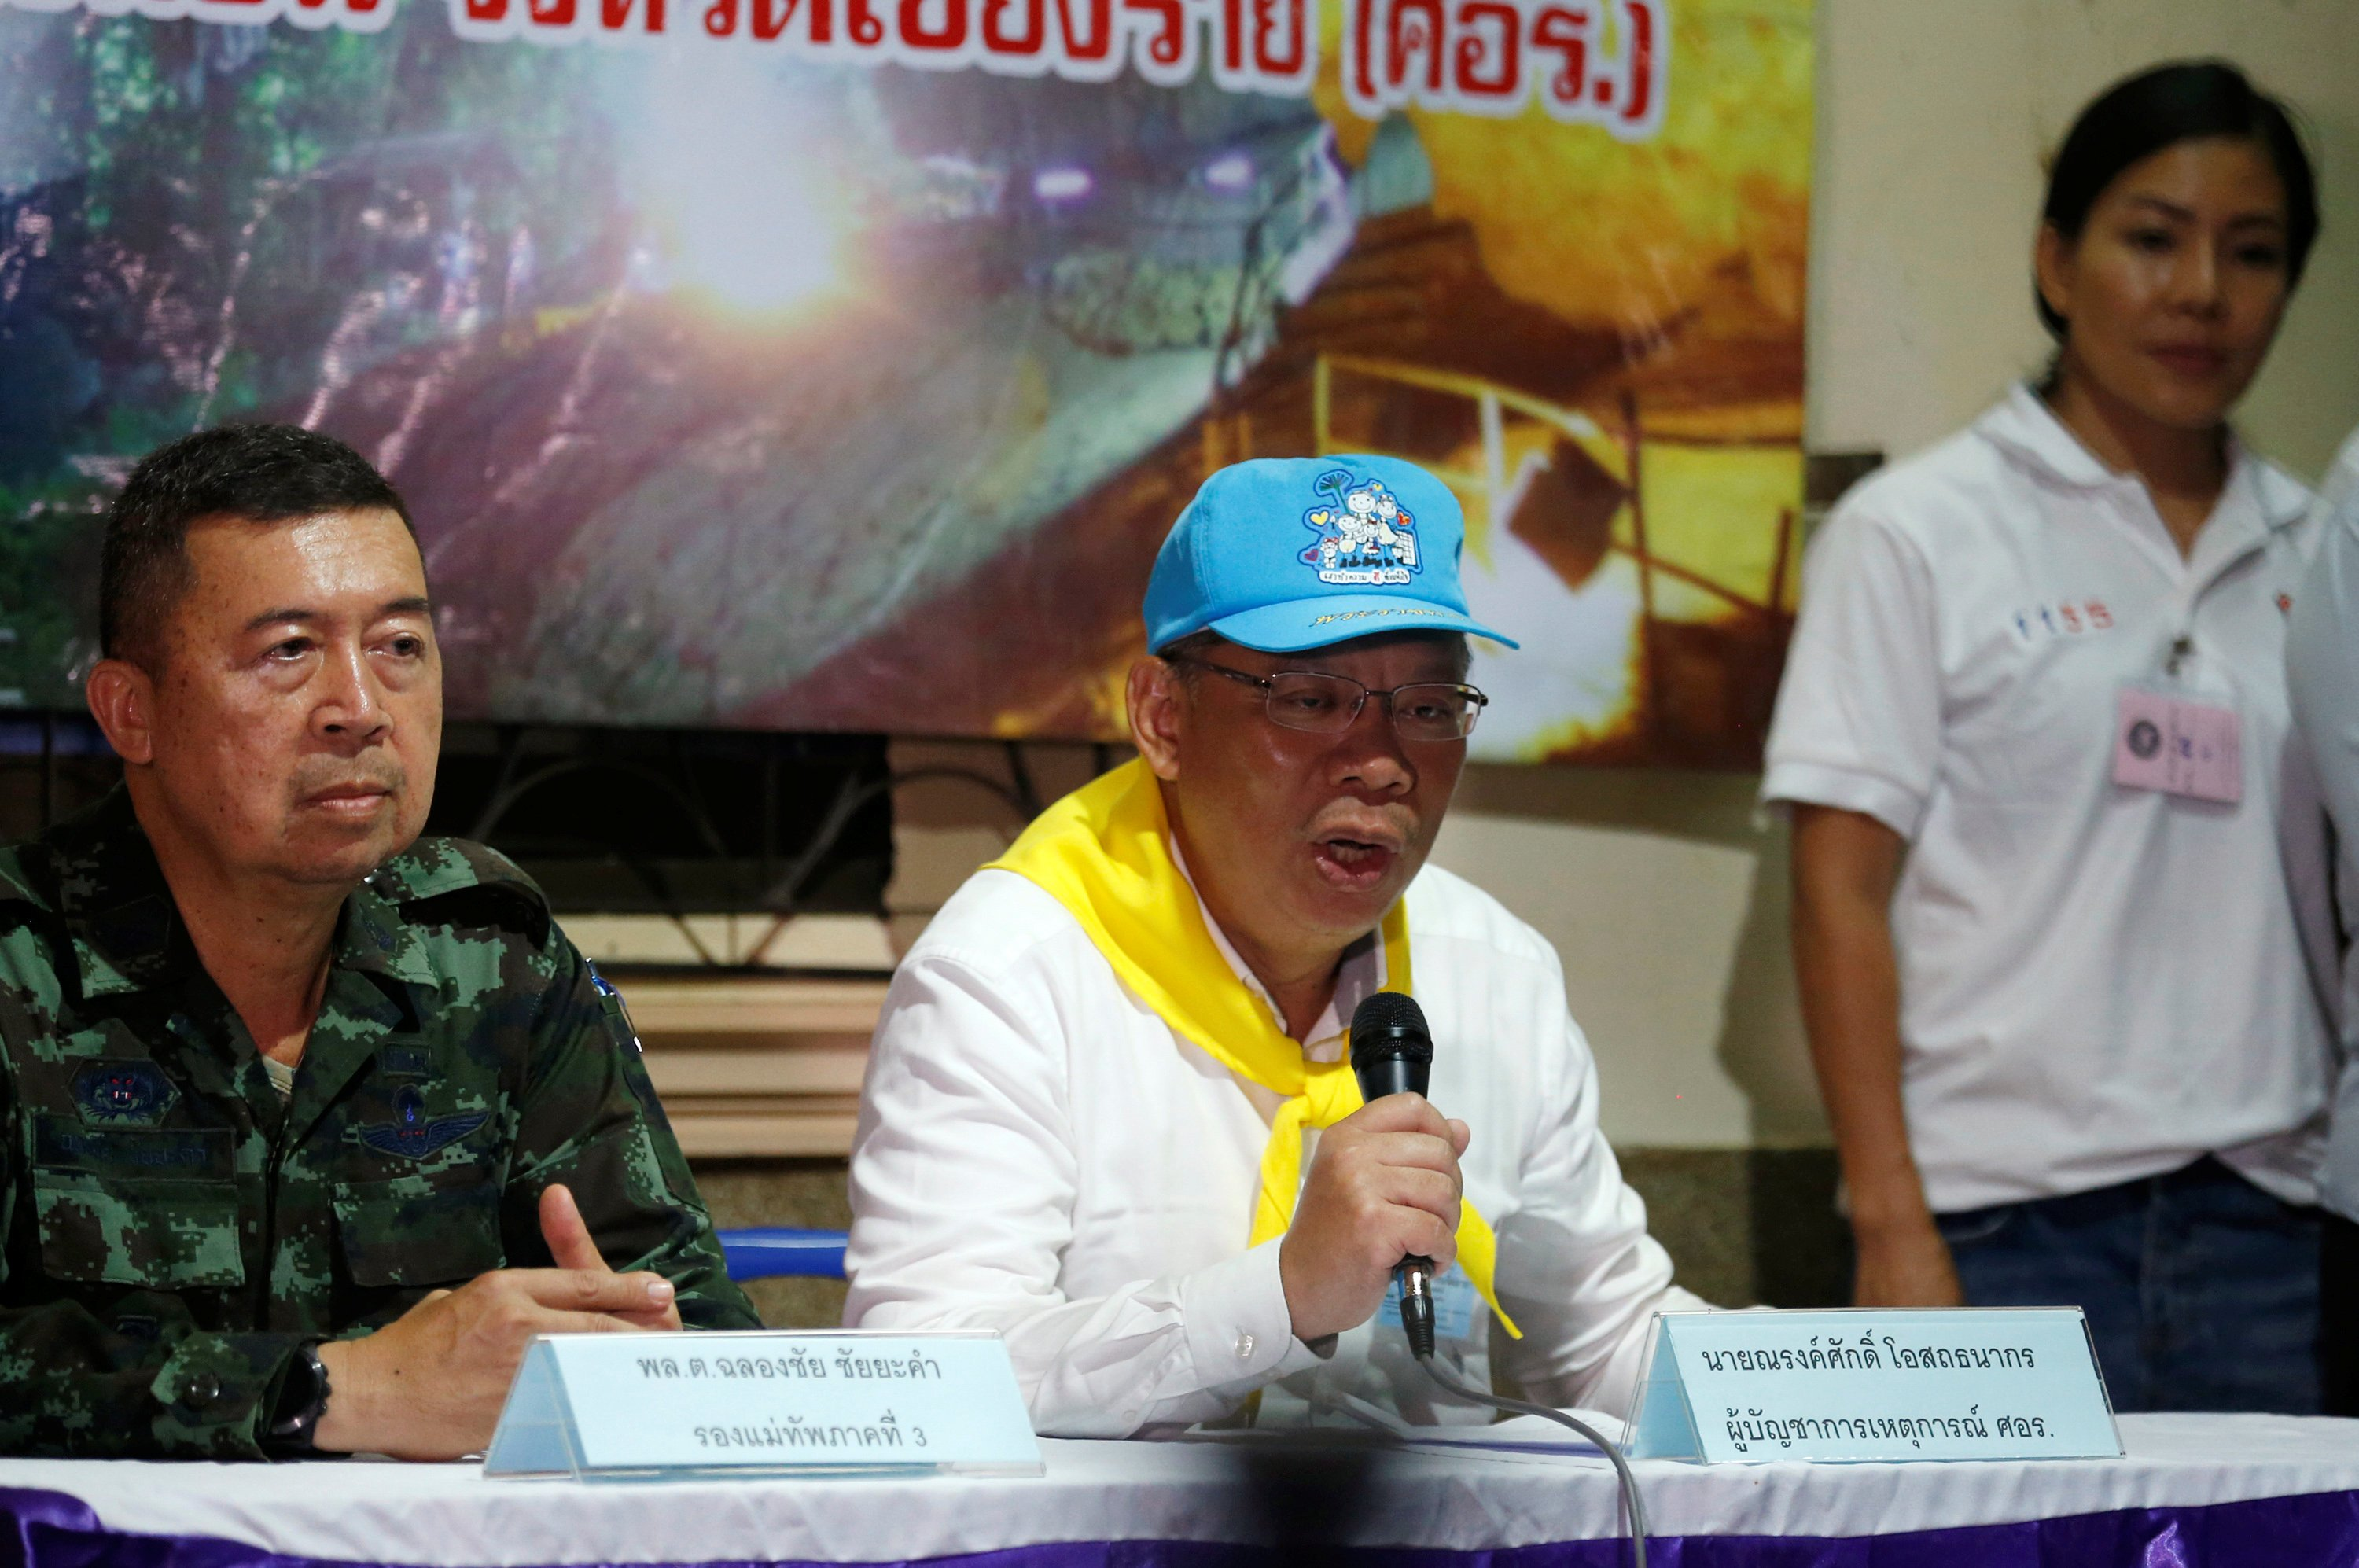 Chiang Rai province acting governor Narongsak Osatanakorn talks to journalist during a news conference near Tham Luang cave complex, in the northern province of Chiang Rai